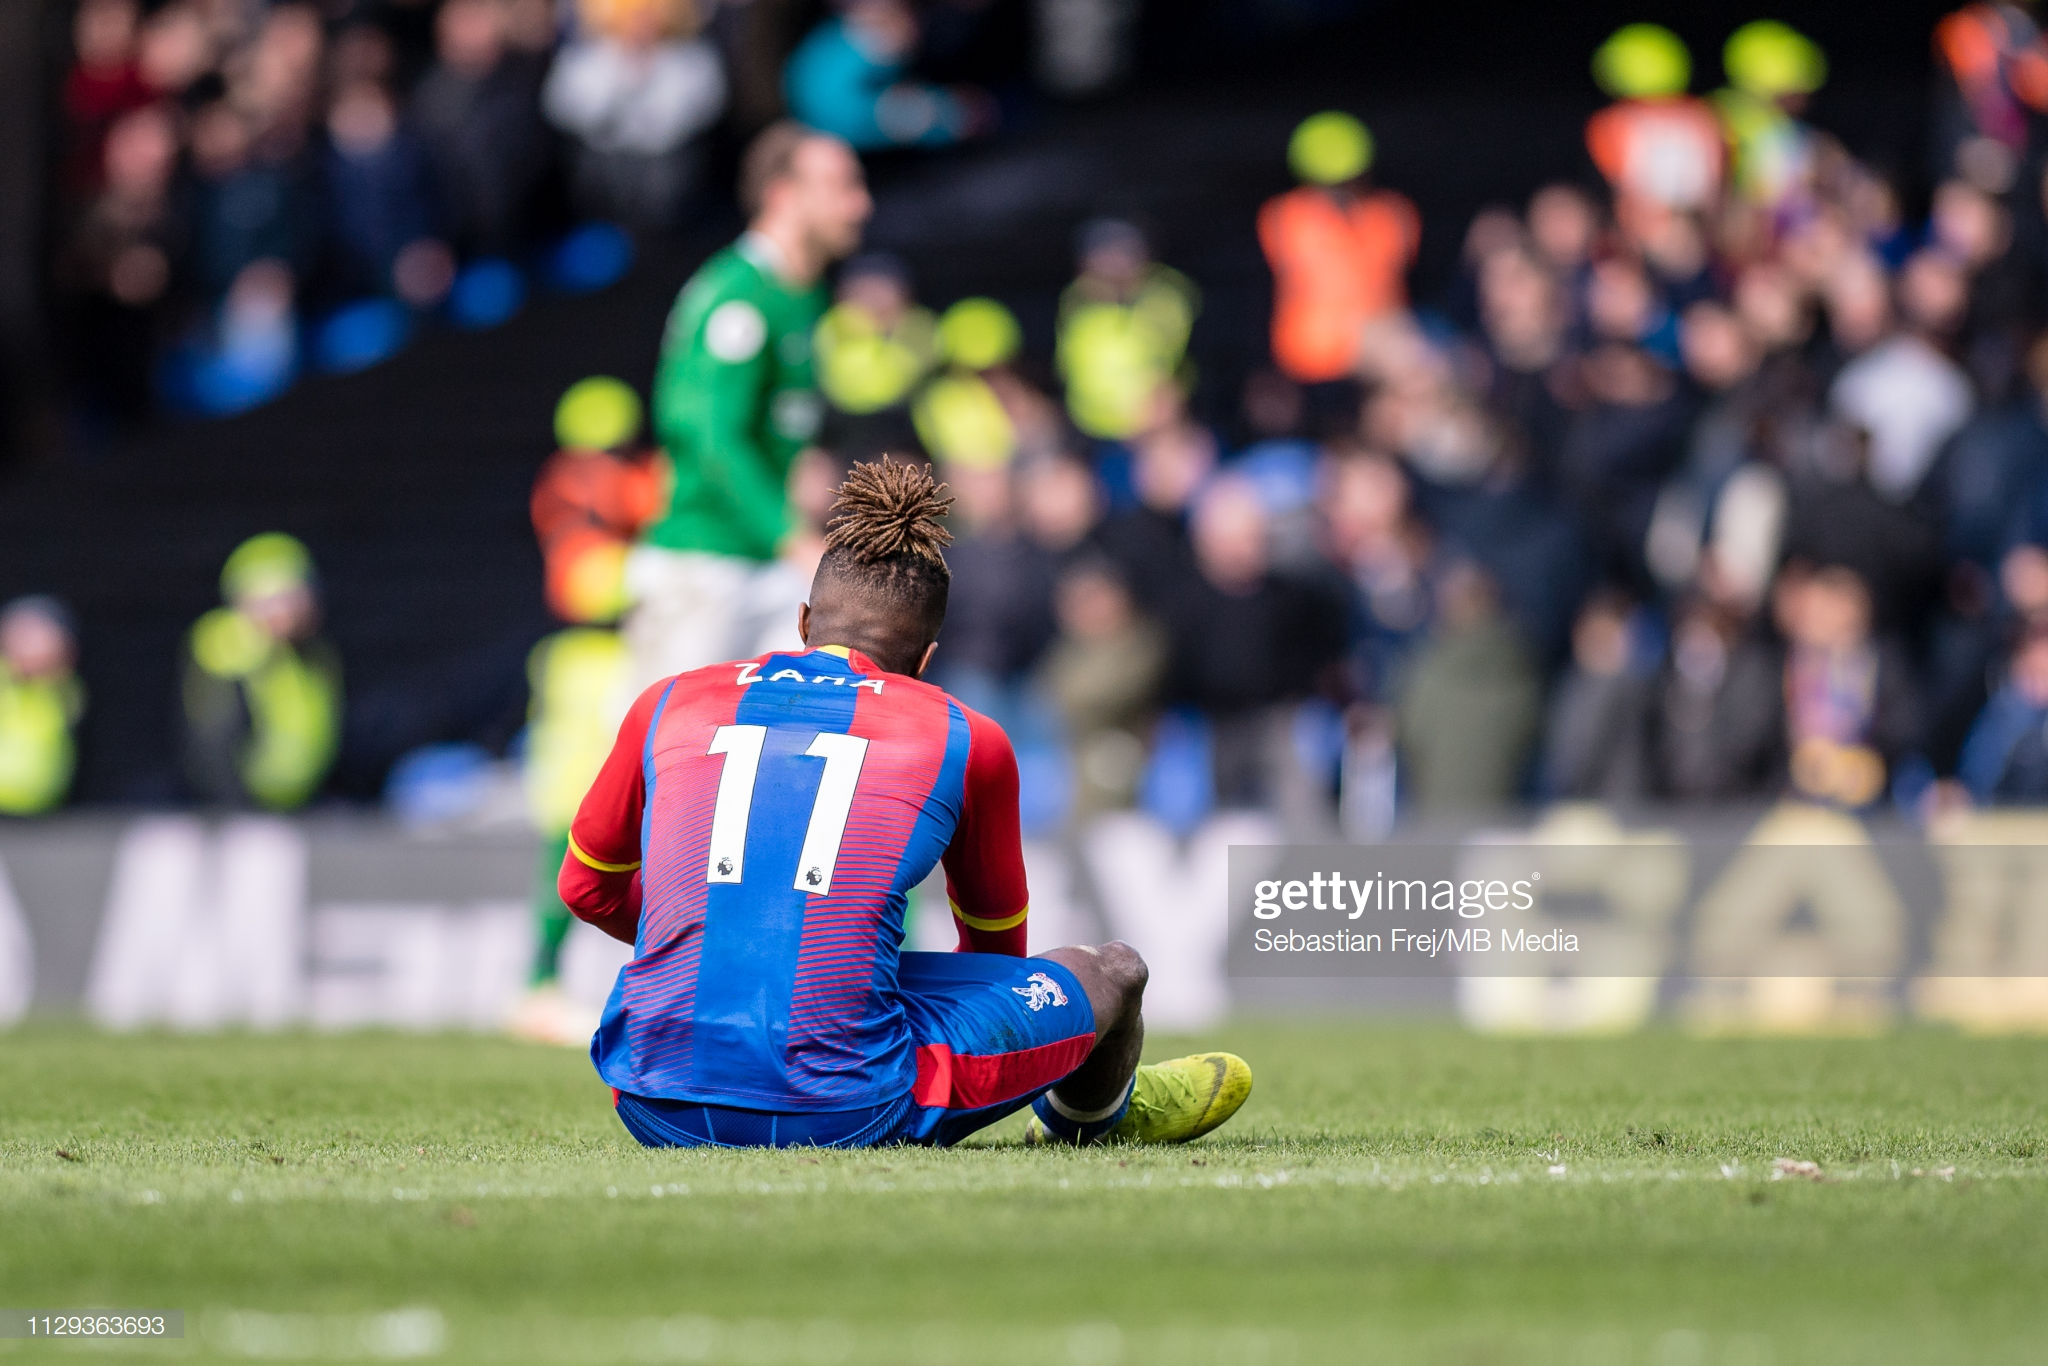 gettyimages-1129363693-2048x2048